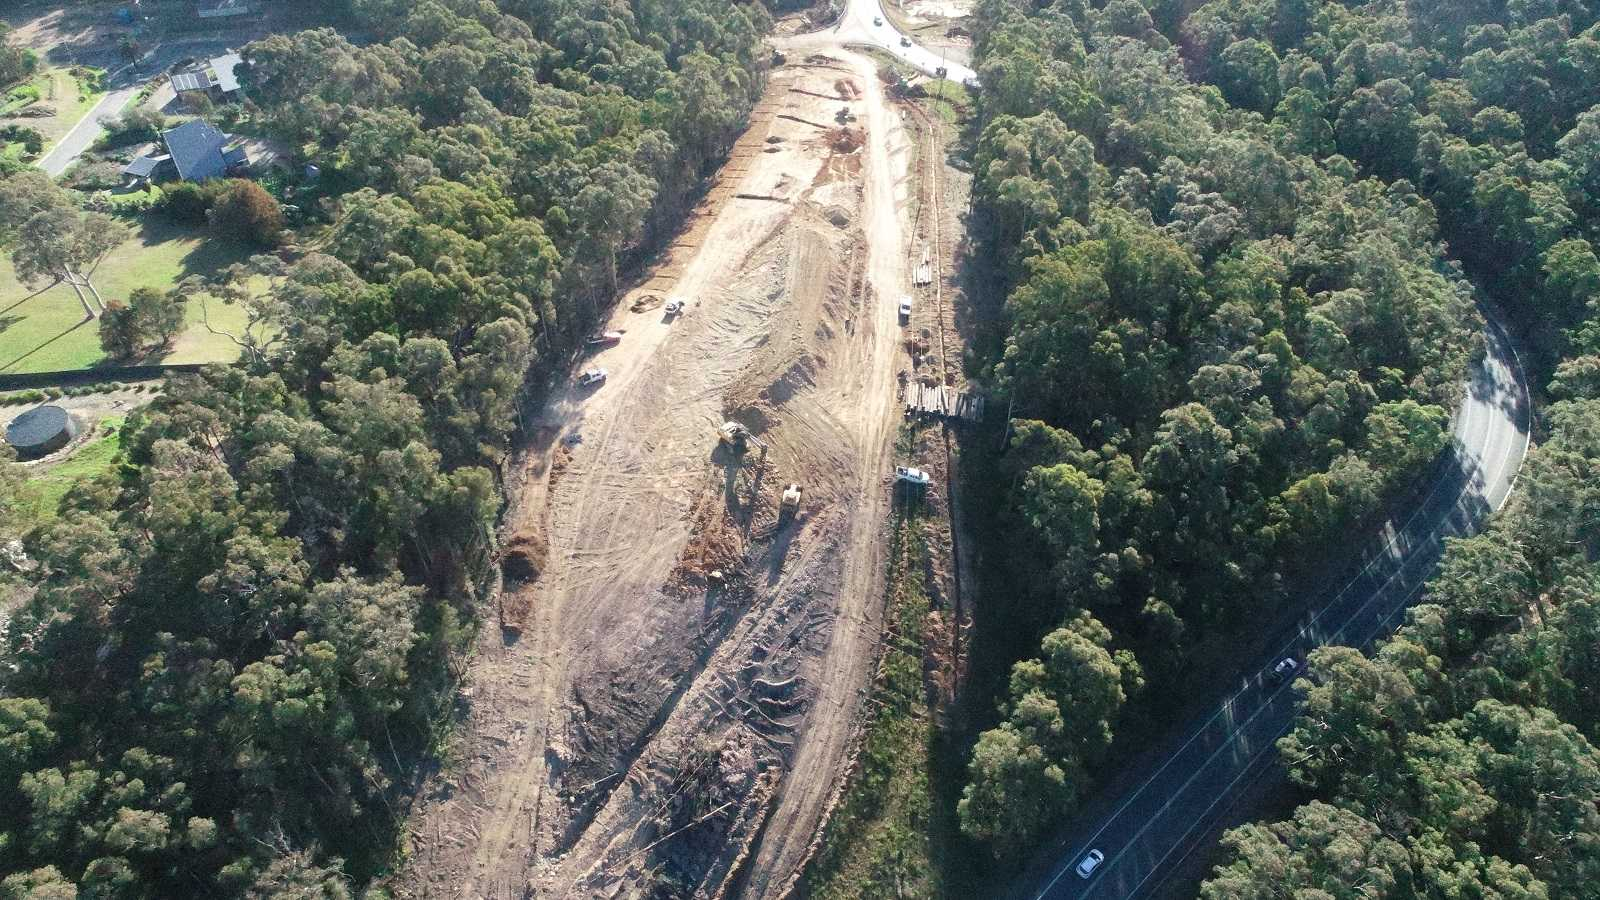 An aerial image shows earthworks cutting a road through a forested area